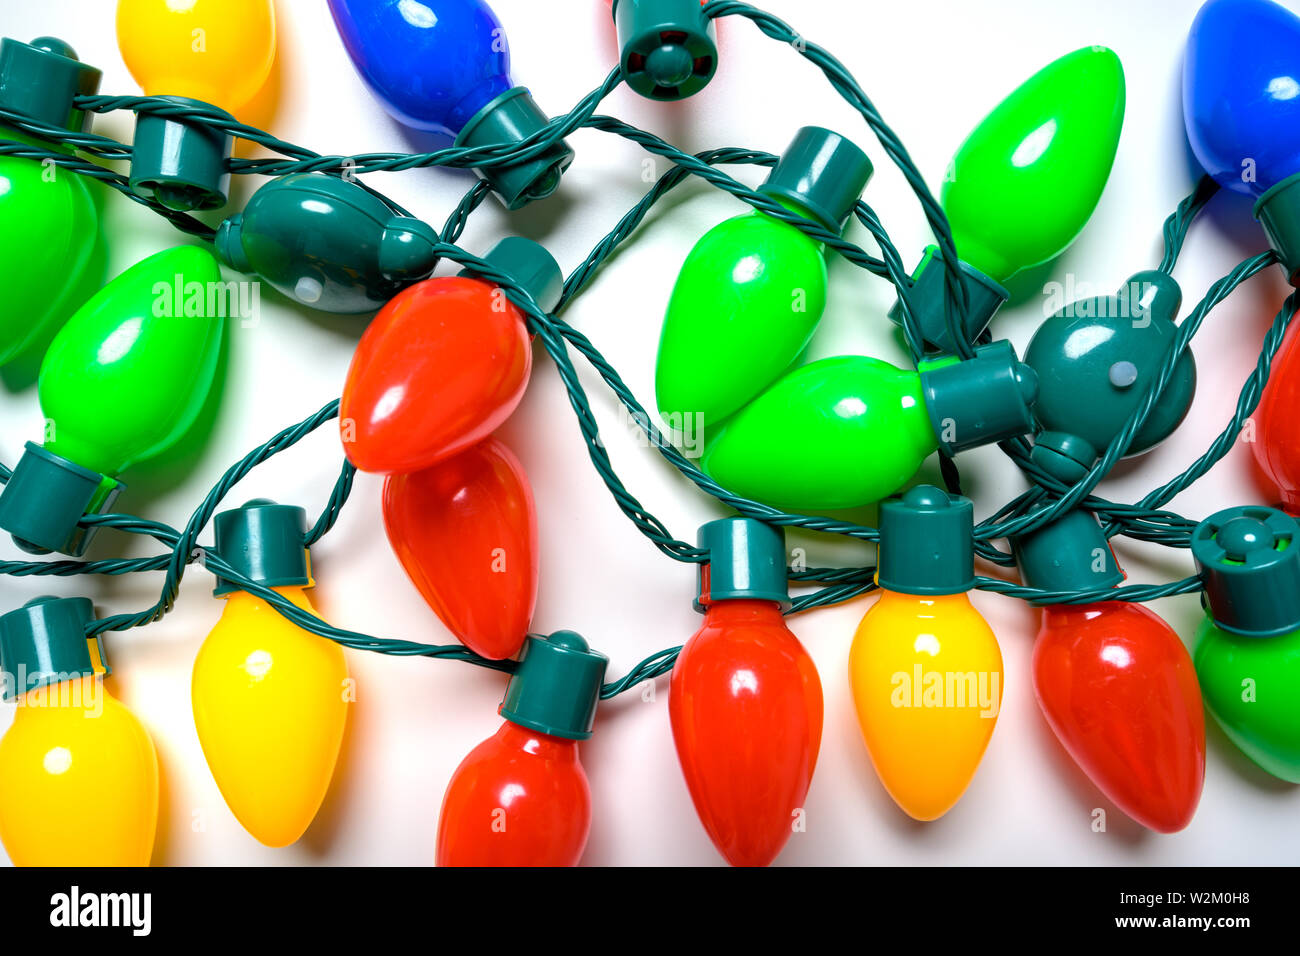 Colorful Christmas lights on a white background Stock Photo